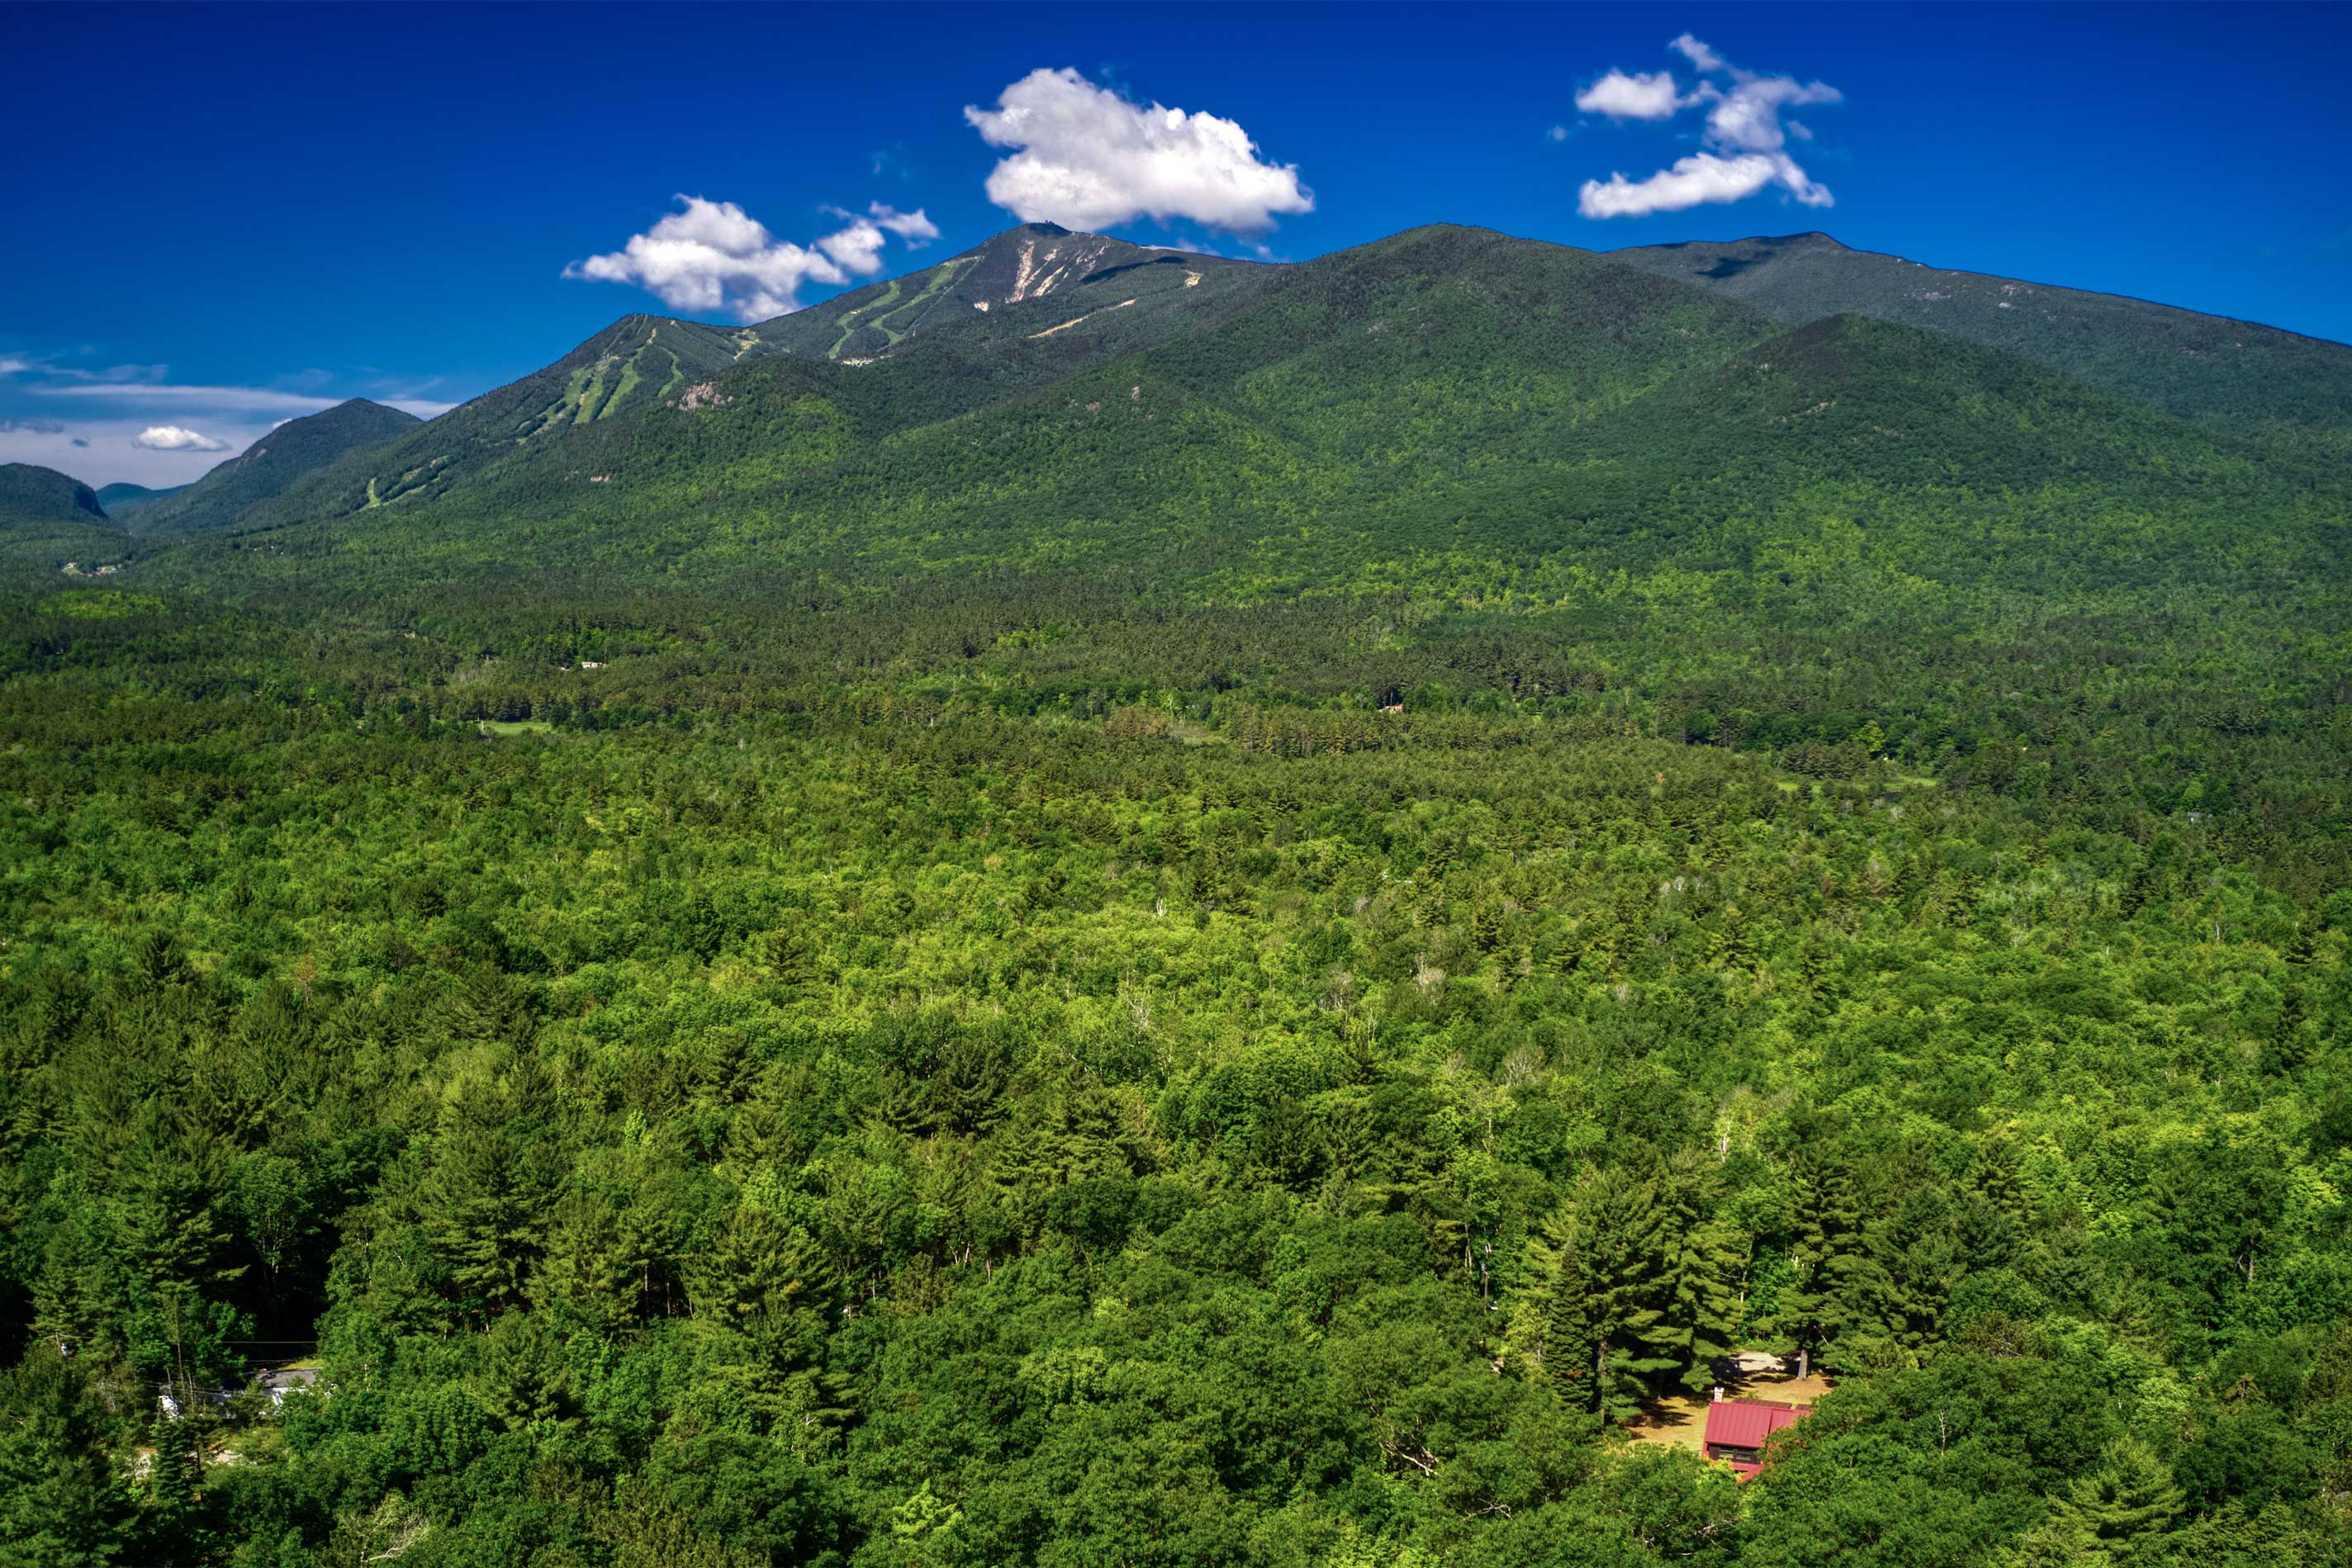 The drive up to the cabin boasts scenic views of the Adirondacks.